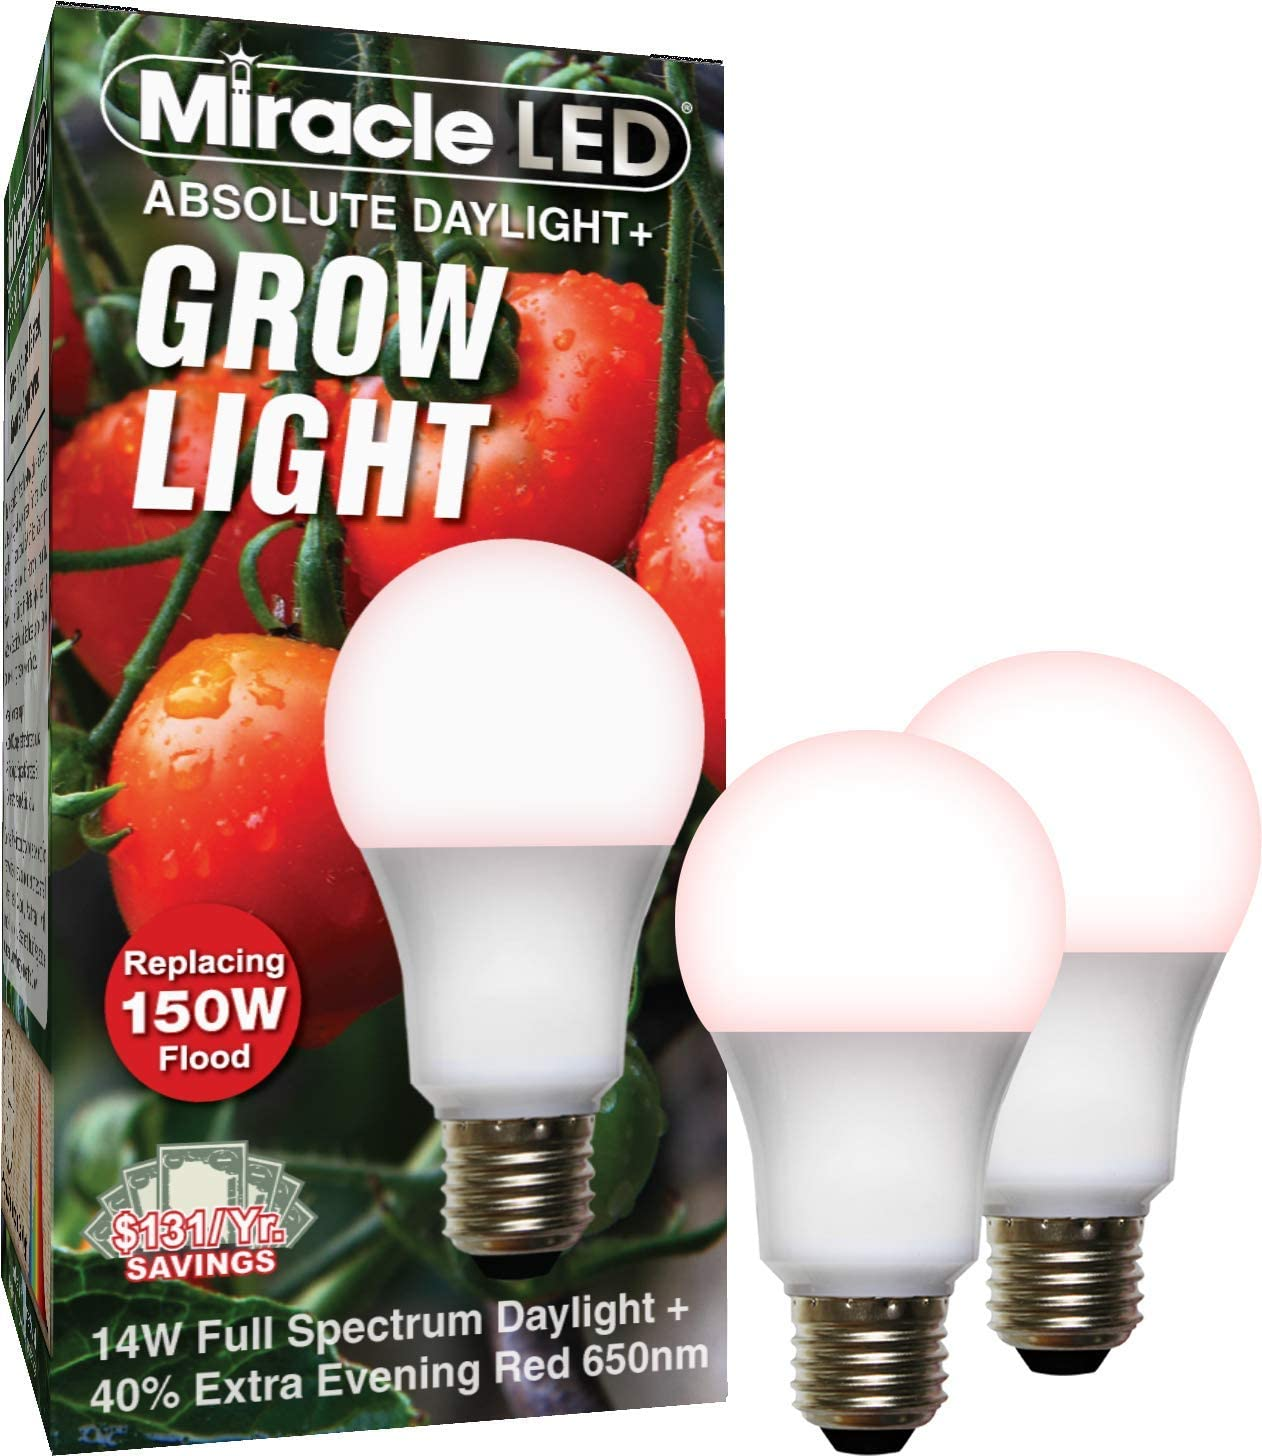 Miracle LED Absolute Daylight Plus Red Spectrum Grow Light - Replaces up to 150W - Plant Growing Light Bulb for Fruiting and Flowering (2-Pack)